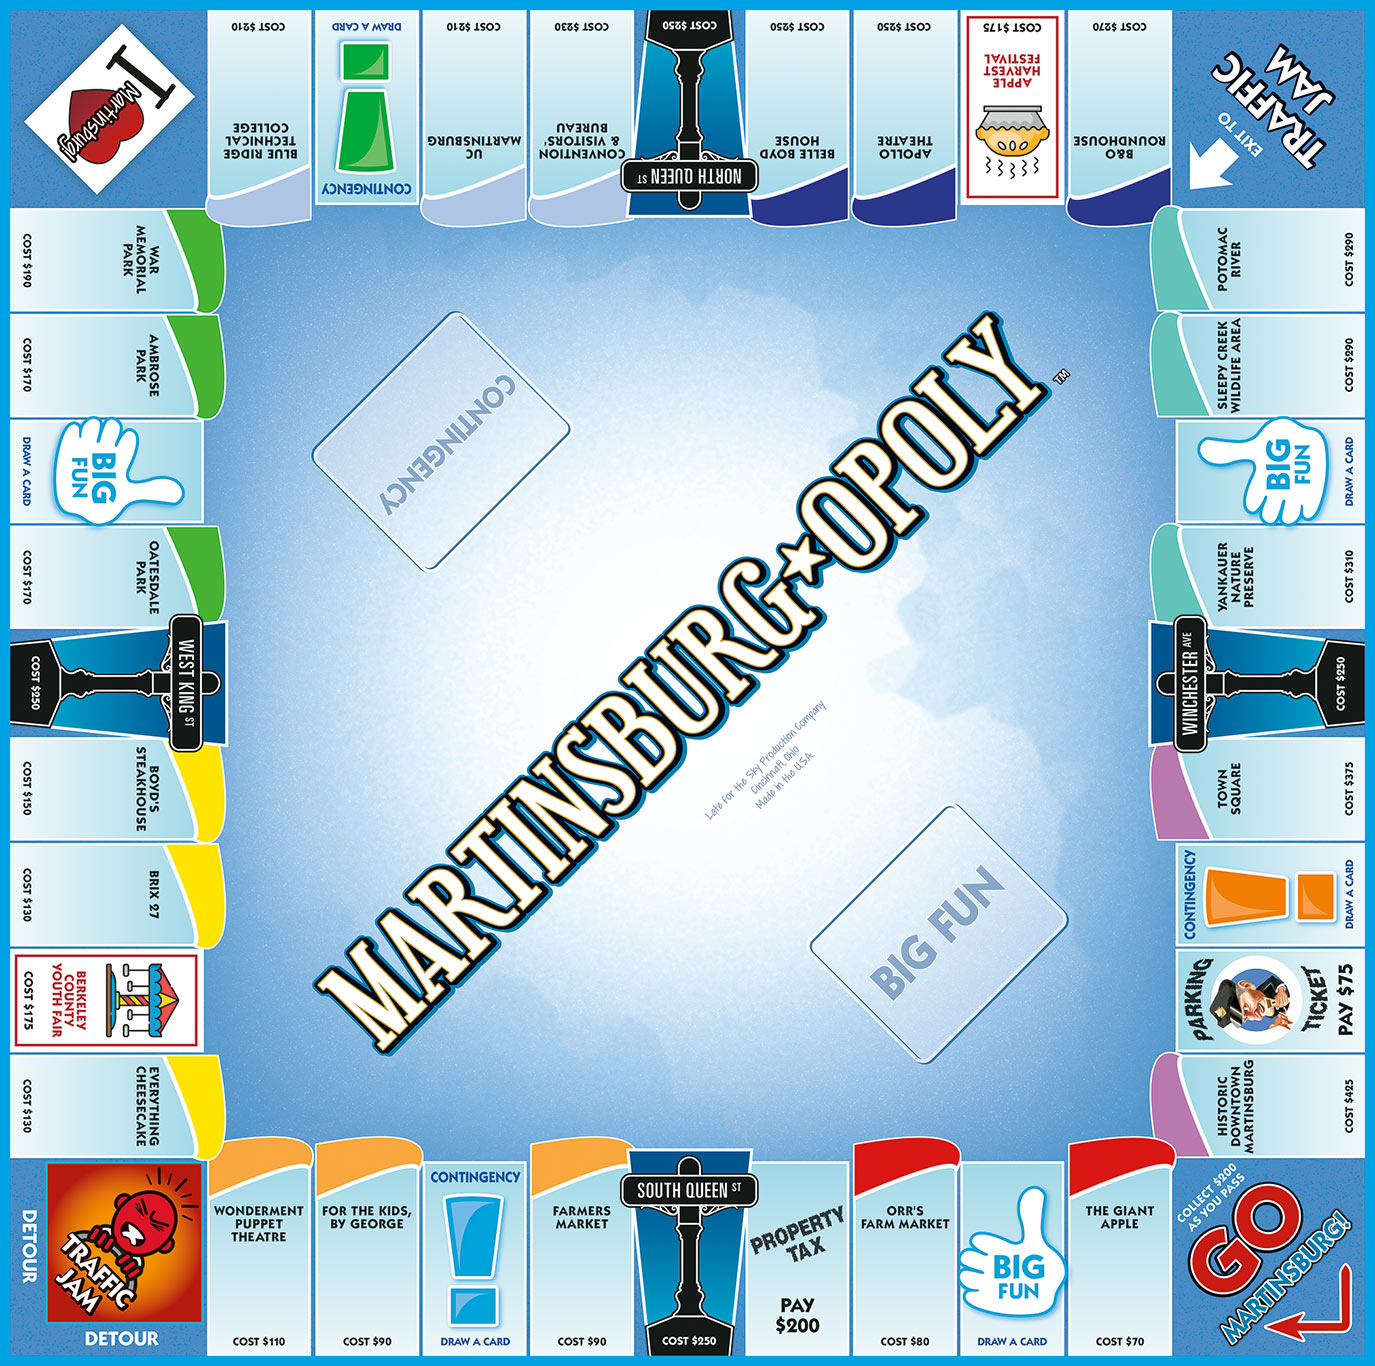 MARTINSBURG-OPOLY Board Game